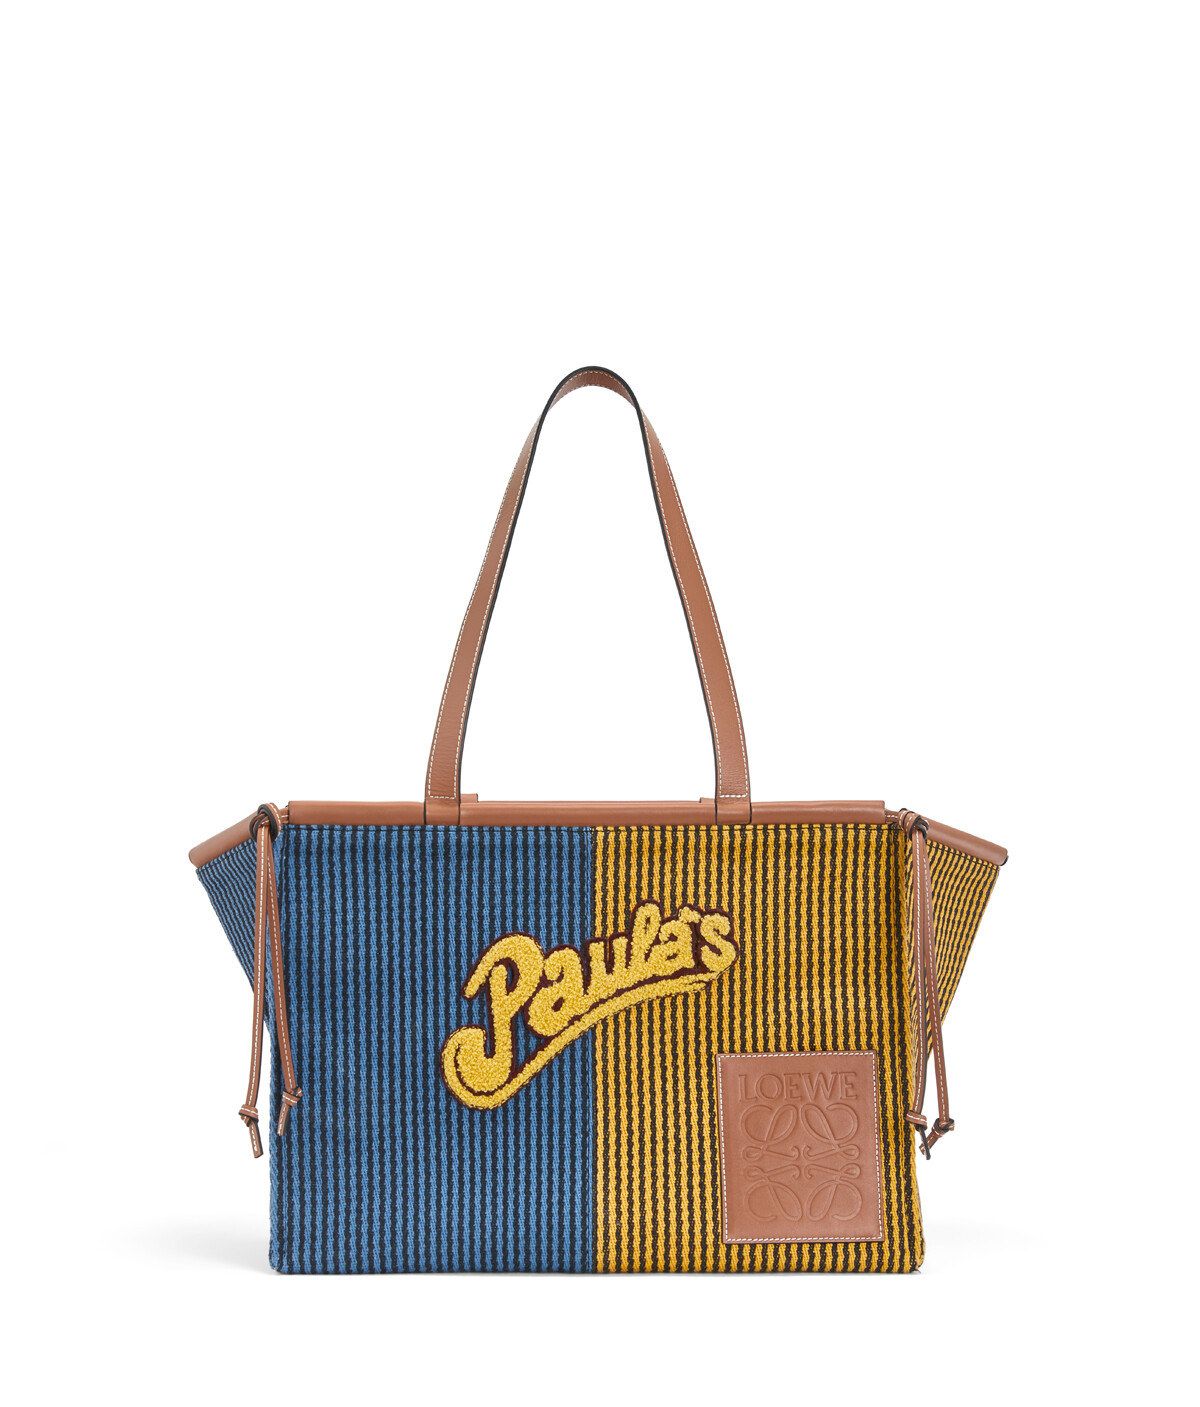 LOEWE Paula's Cushion Tote Stripes Large Blue/Yellow front